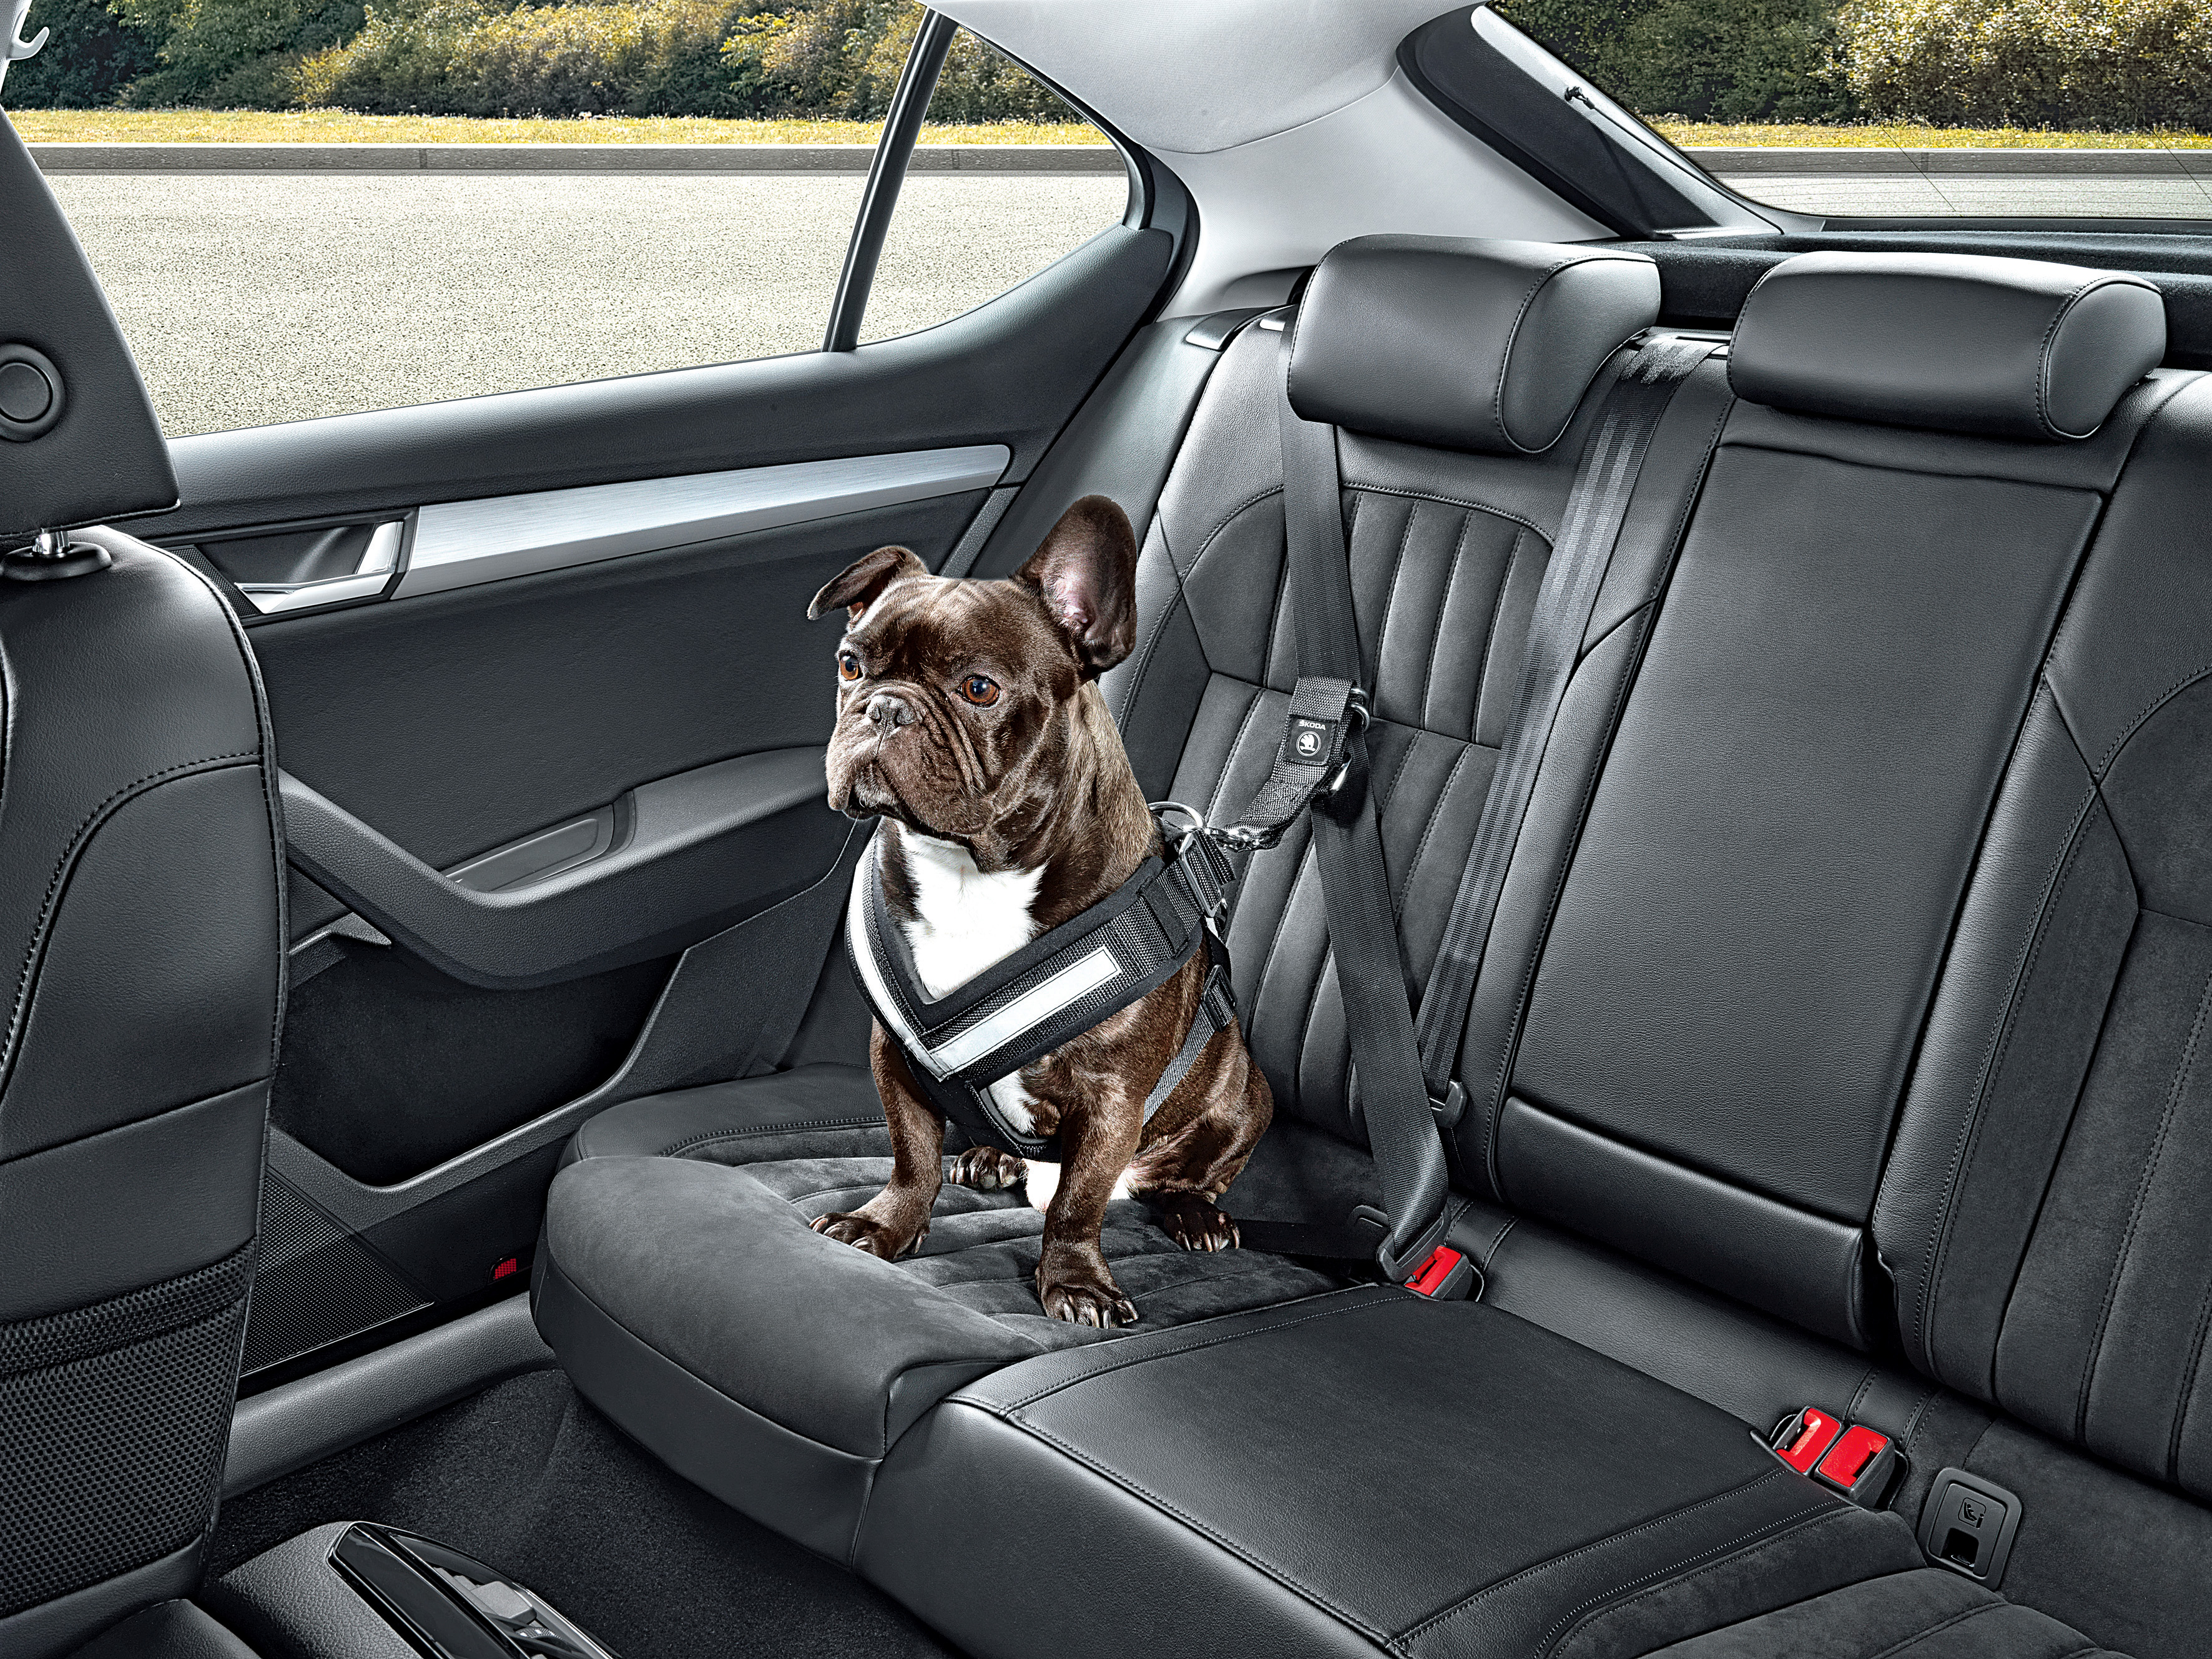 Just Made For Dog Lovers Skoda Offers Comprehensive Accessories For Keeping Your Dogs Safe In The Car Skoda Storyboard